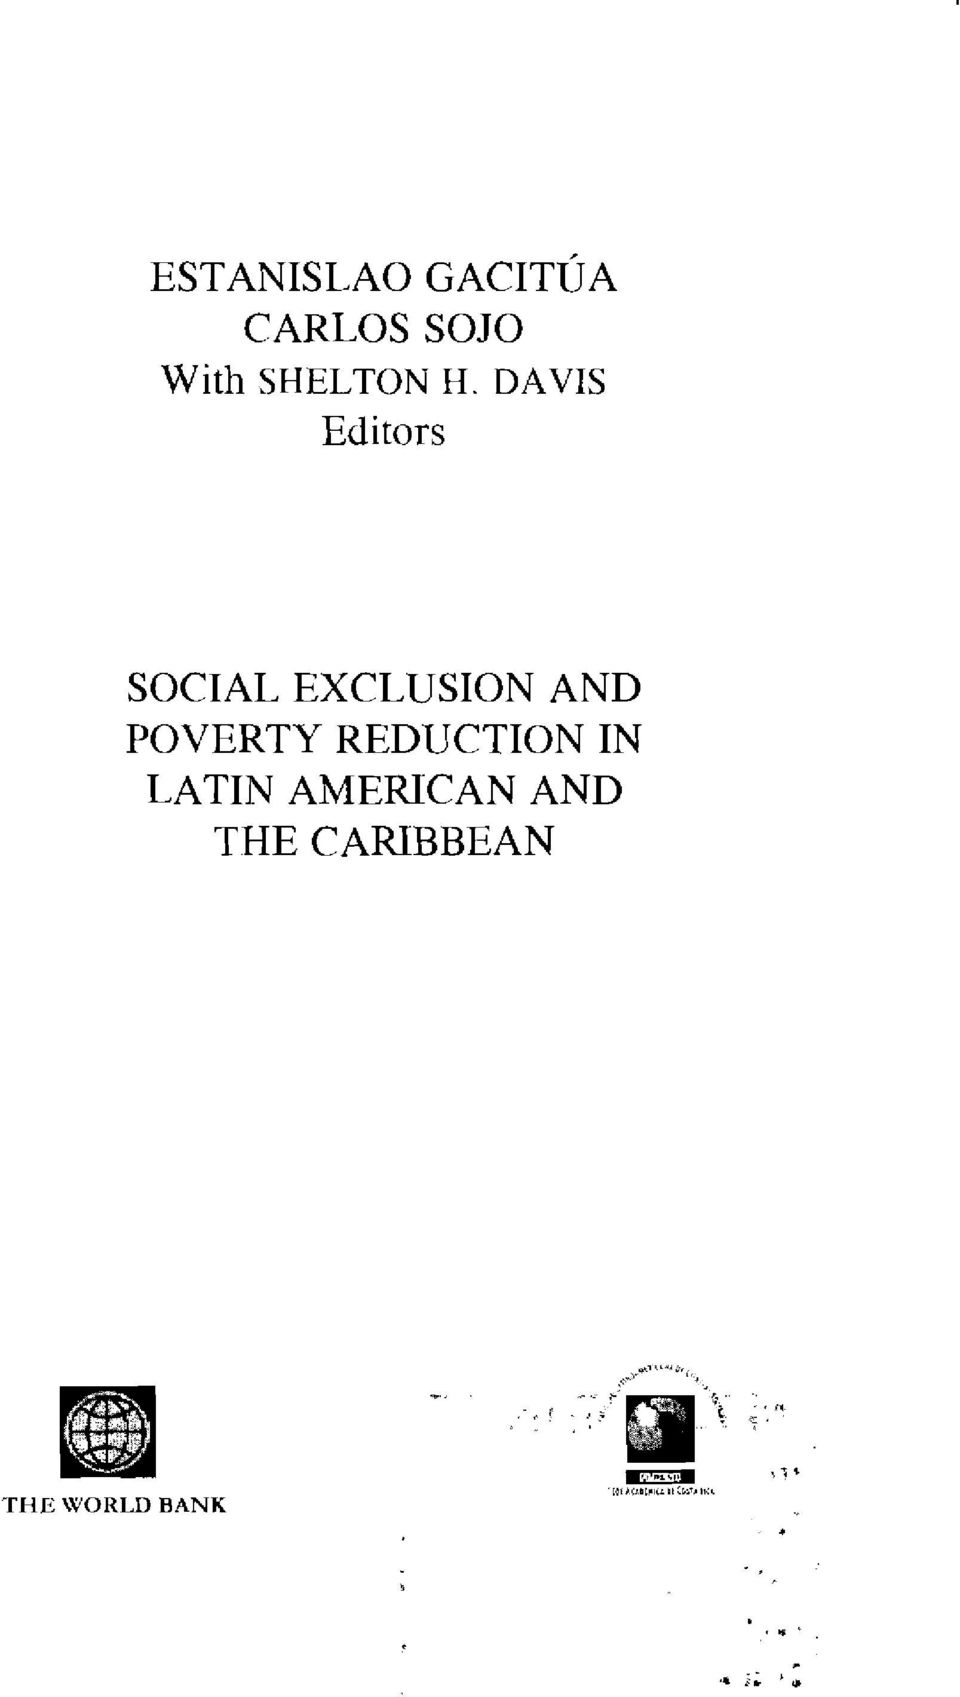 DAVIS Editors SOCIAL EXCLUSION AND